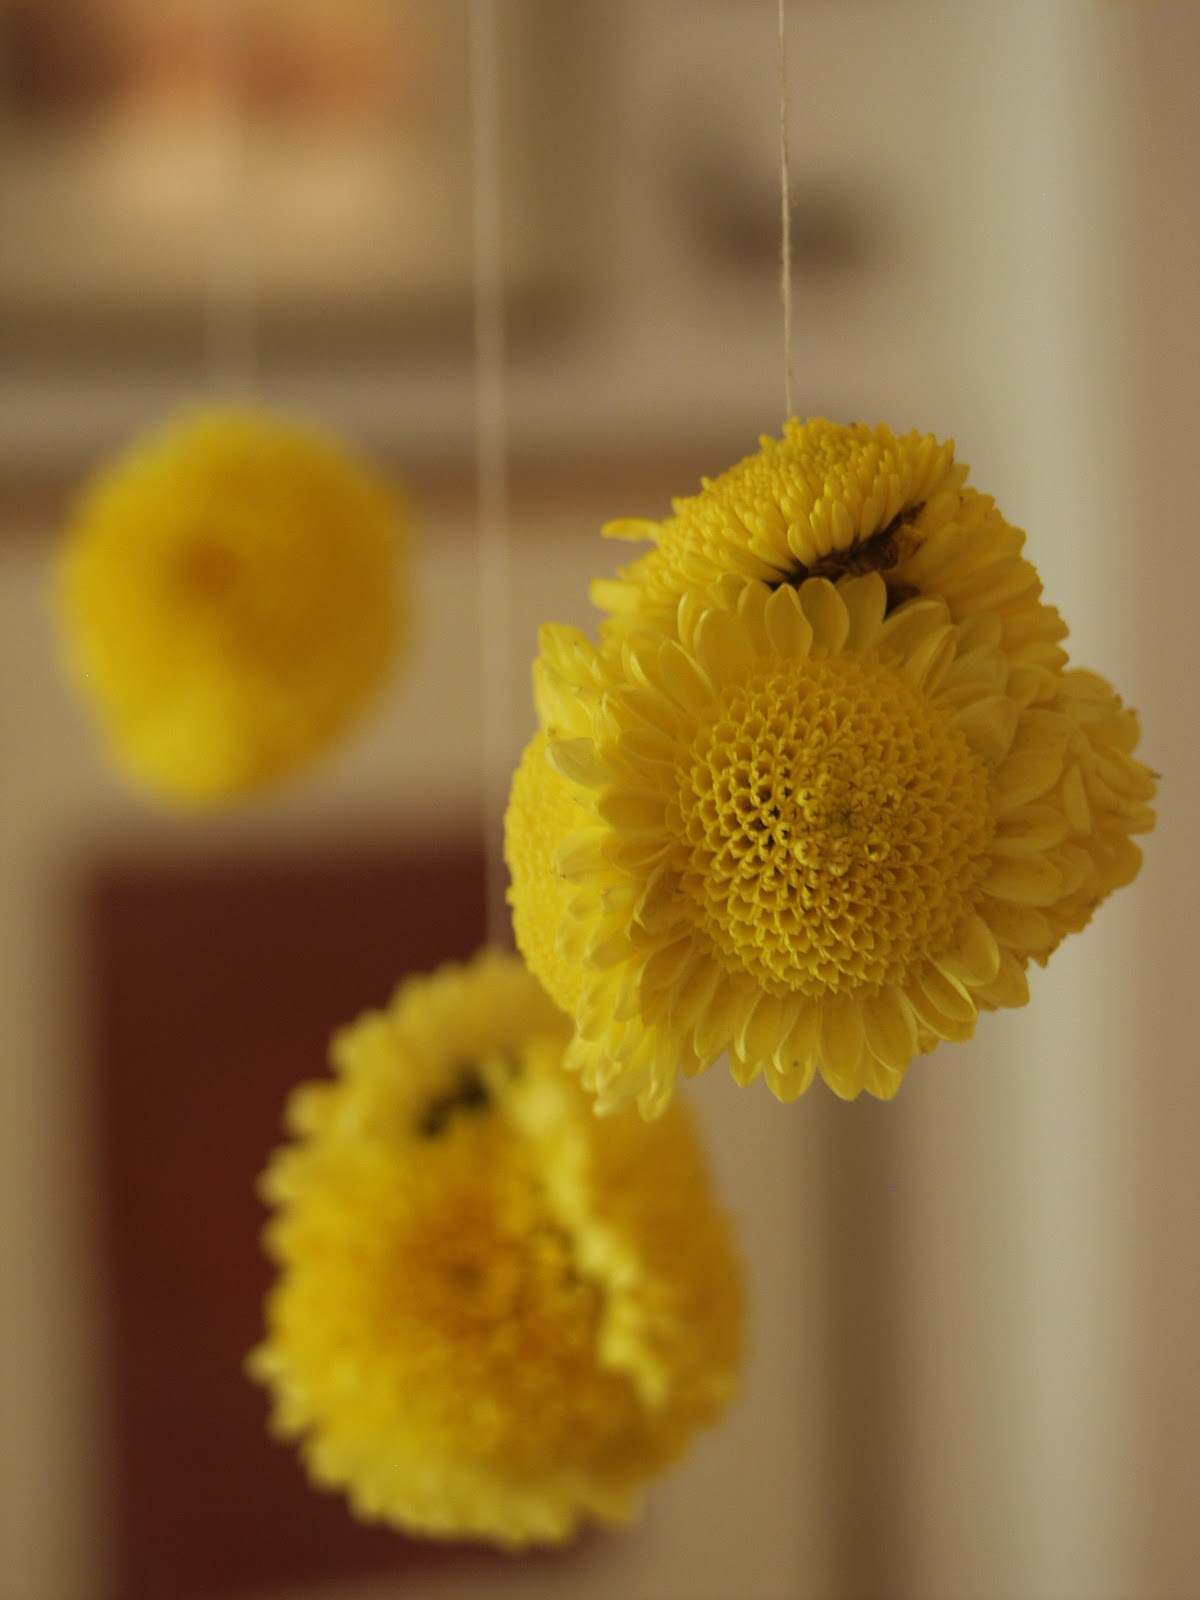 Rajee Sood Quick And Easy Hang Some Flower Balls This Diwali